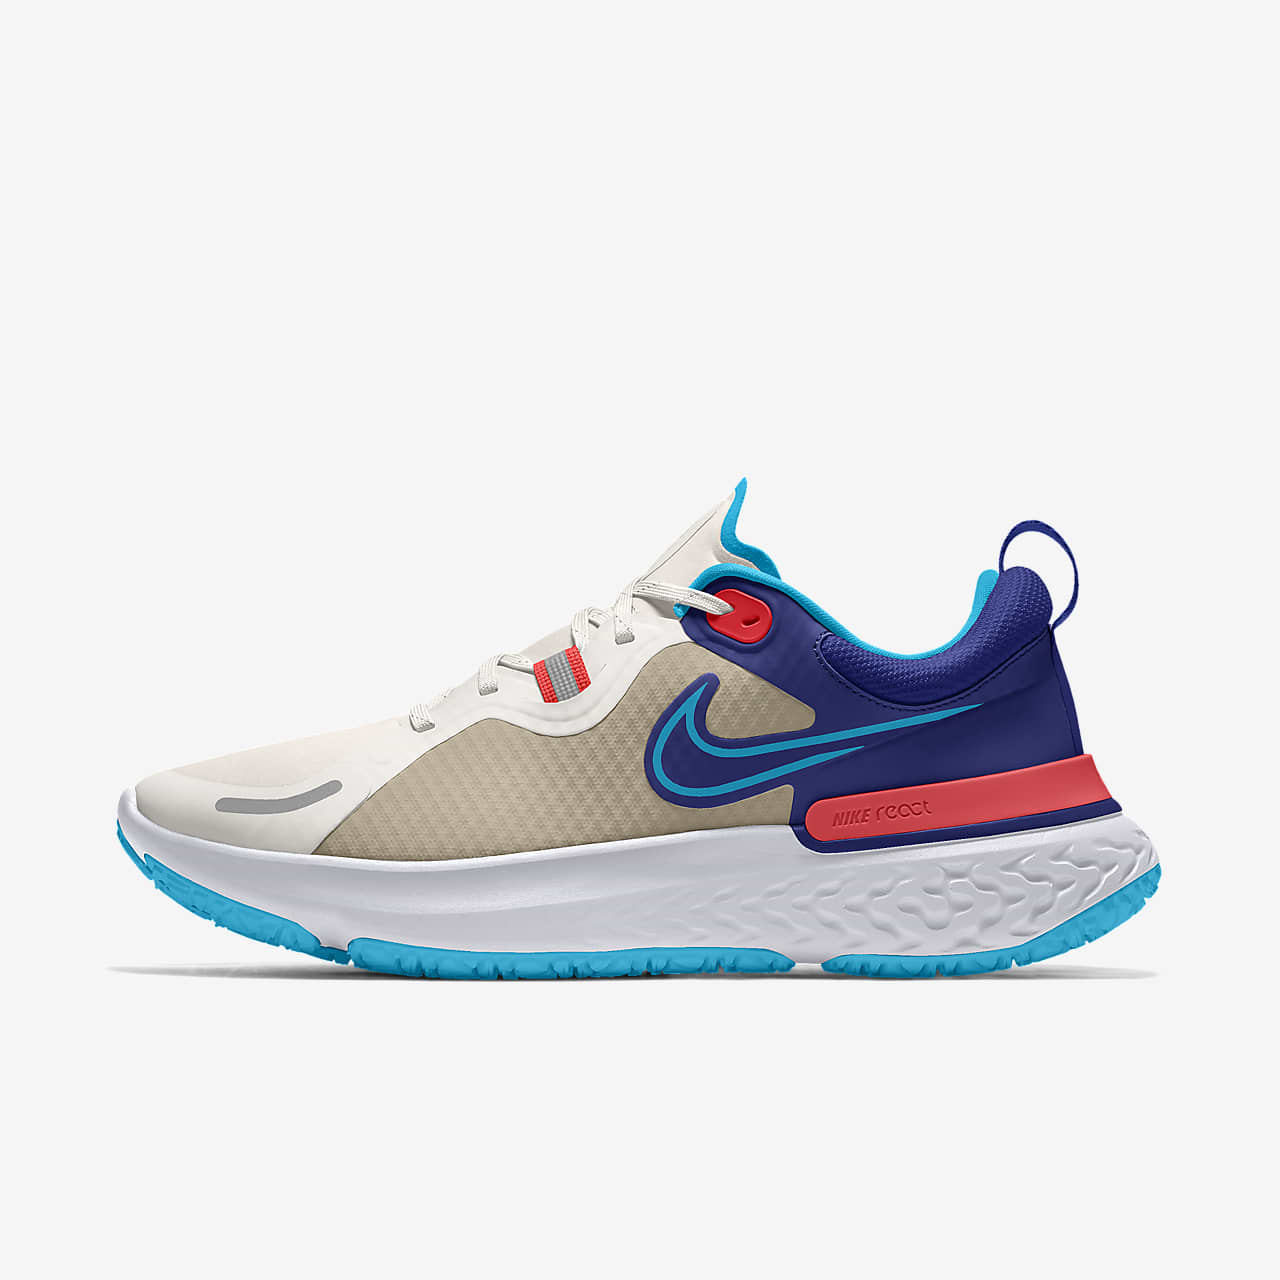 Nike React Miler Shield By You 專屬訂製跑鞋